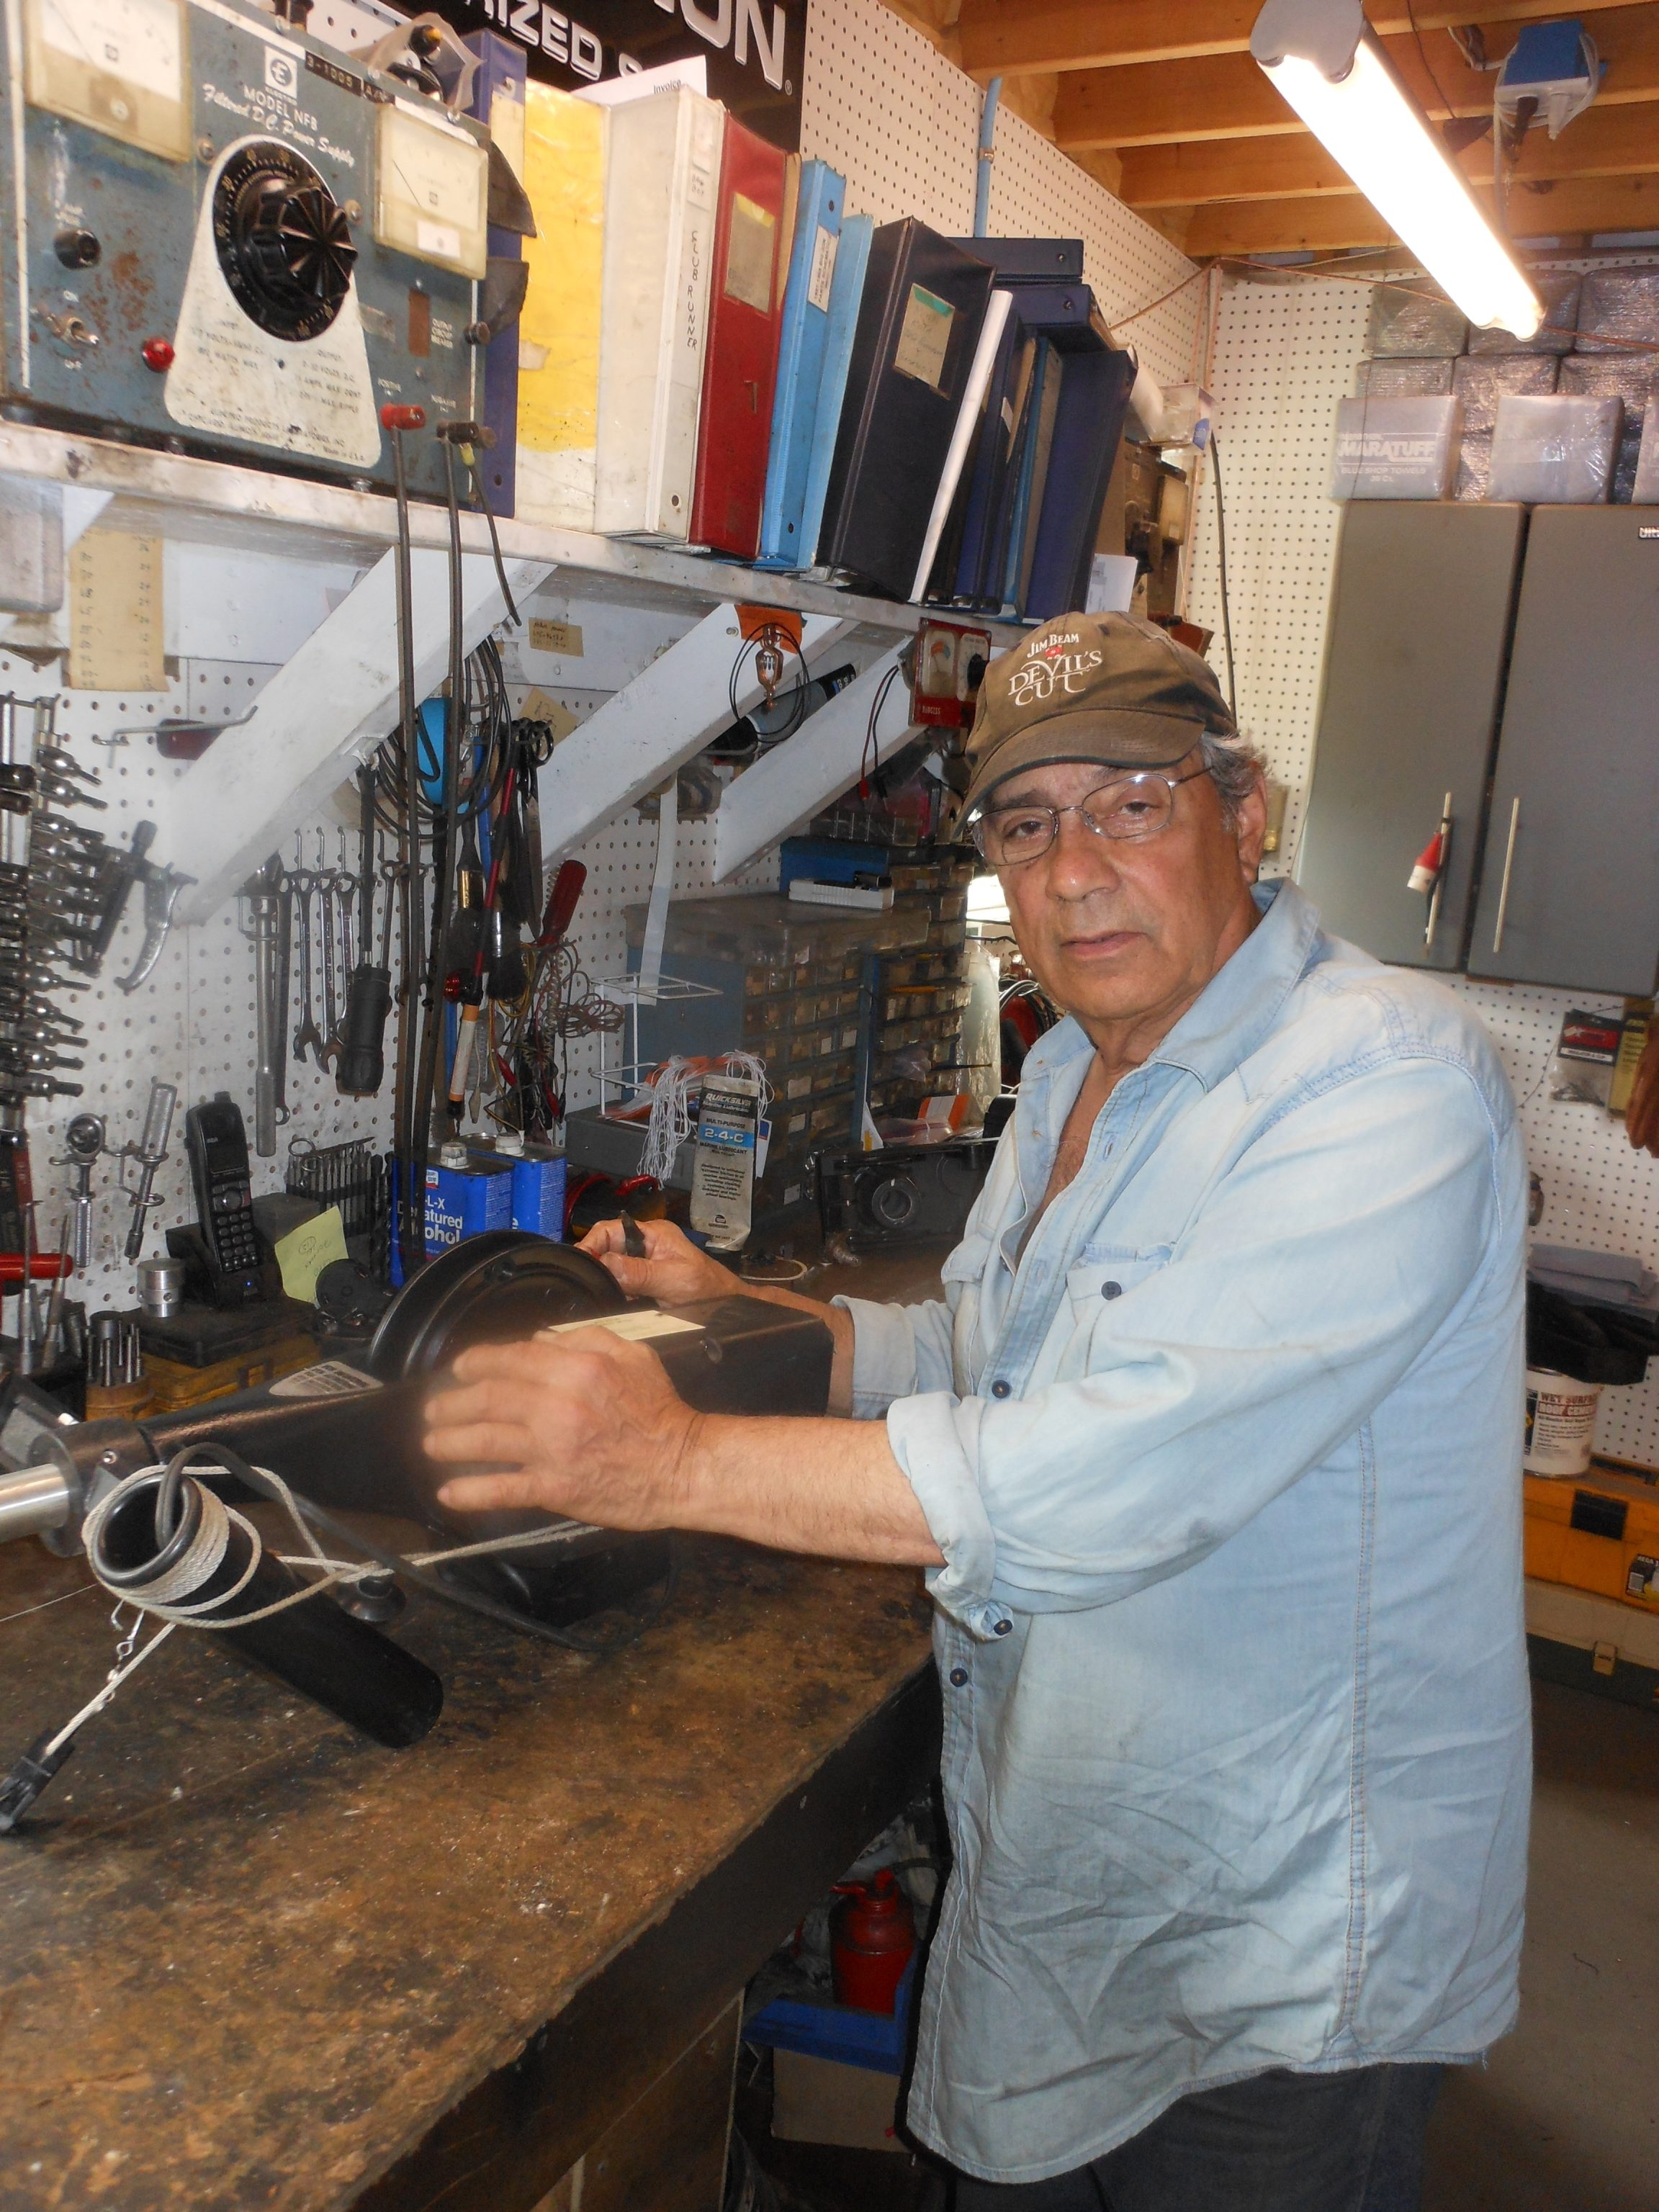 Tony the Reel Man keeps busy at his work bench in Orchard Park.